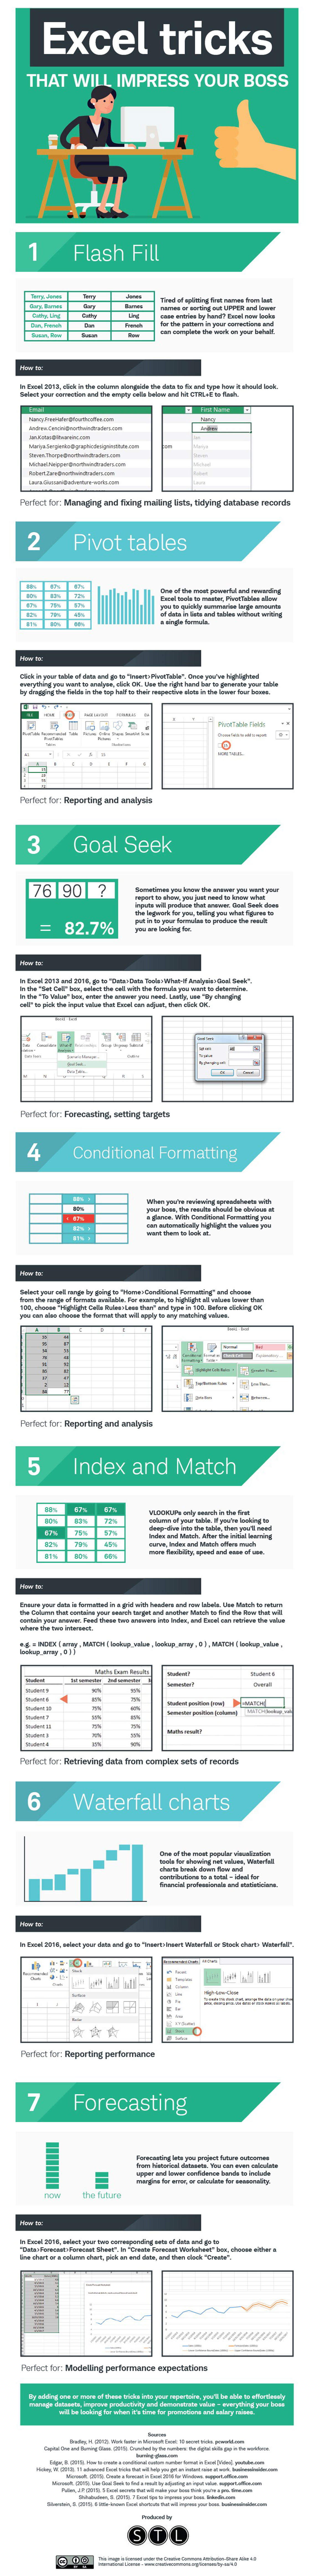 Excel Tricks that will Impress Your Boss Infographic